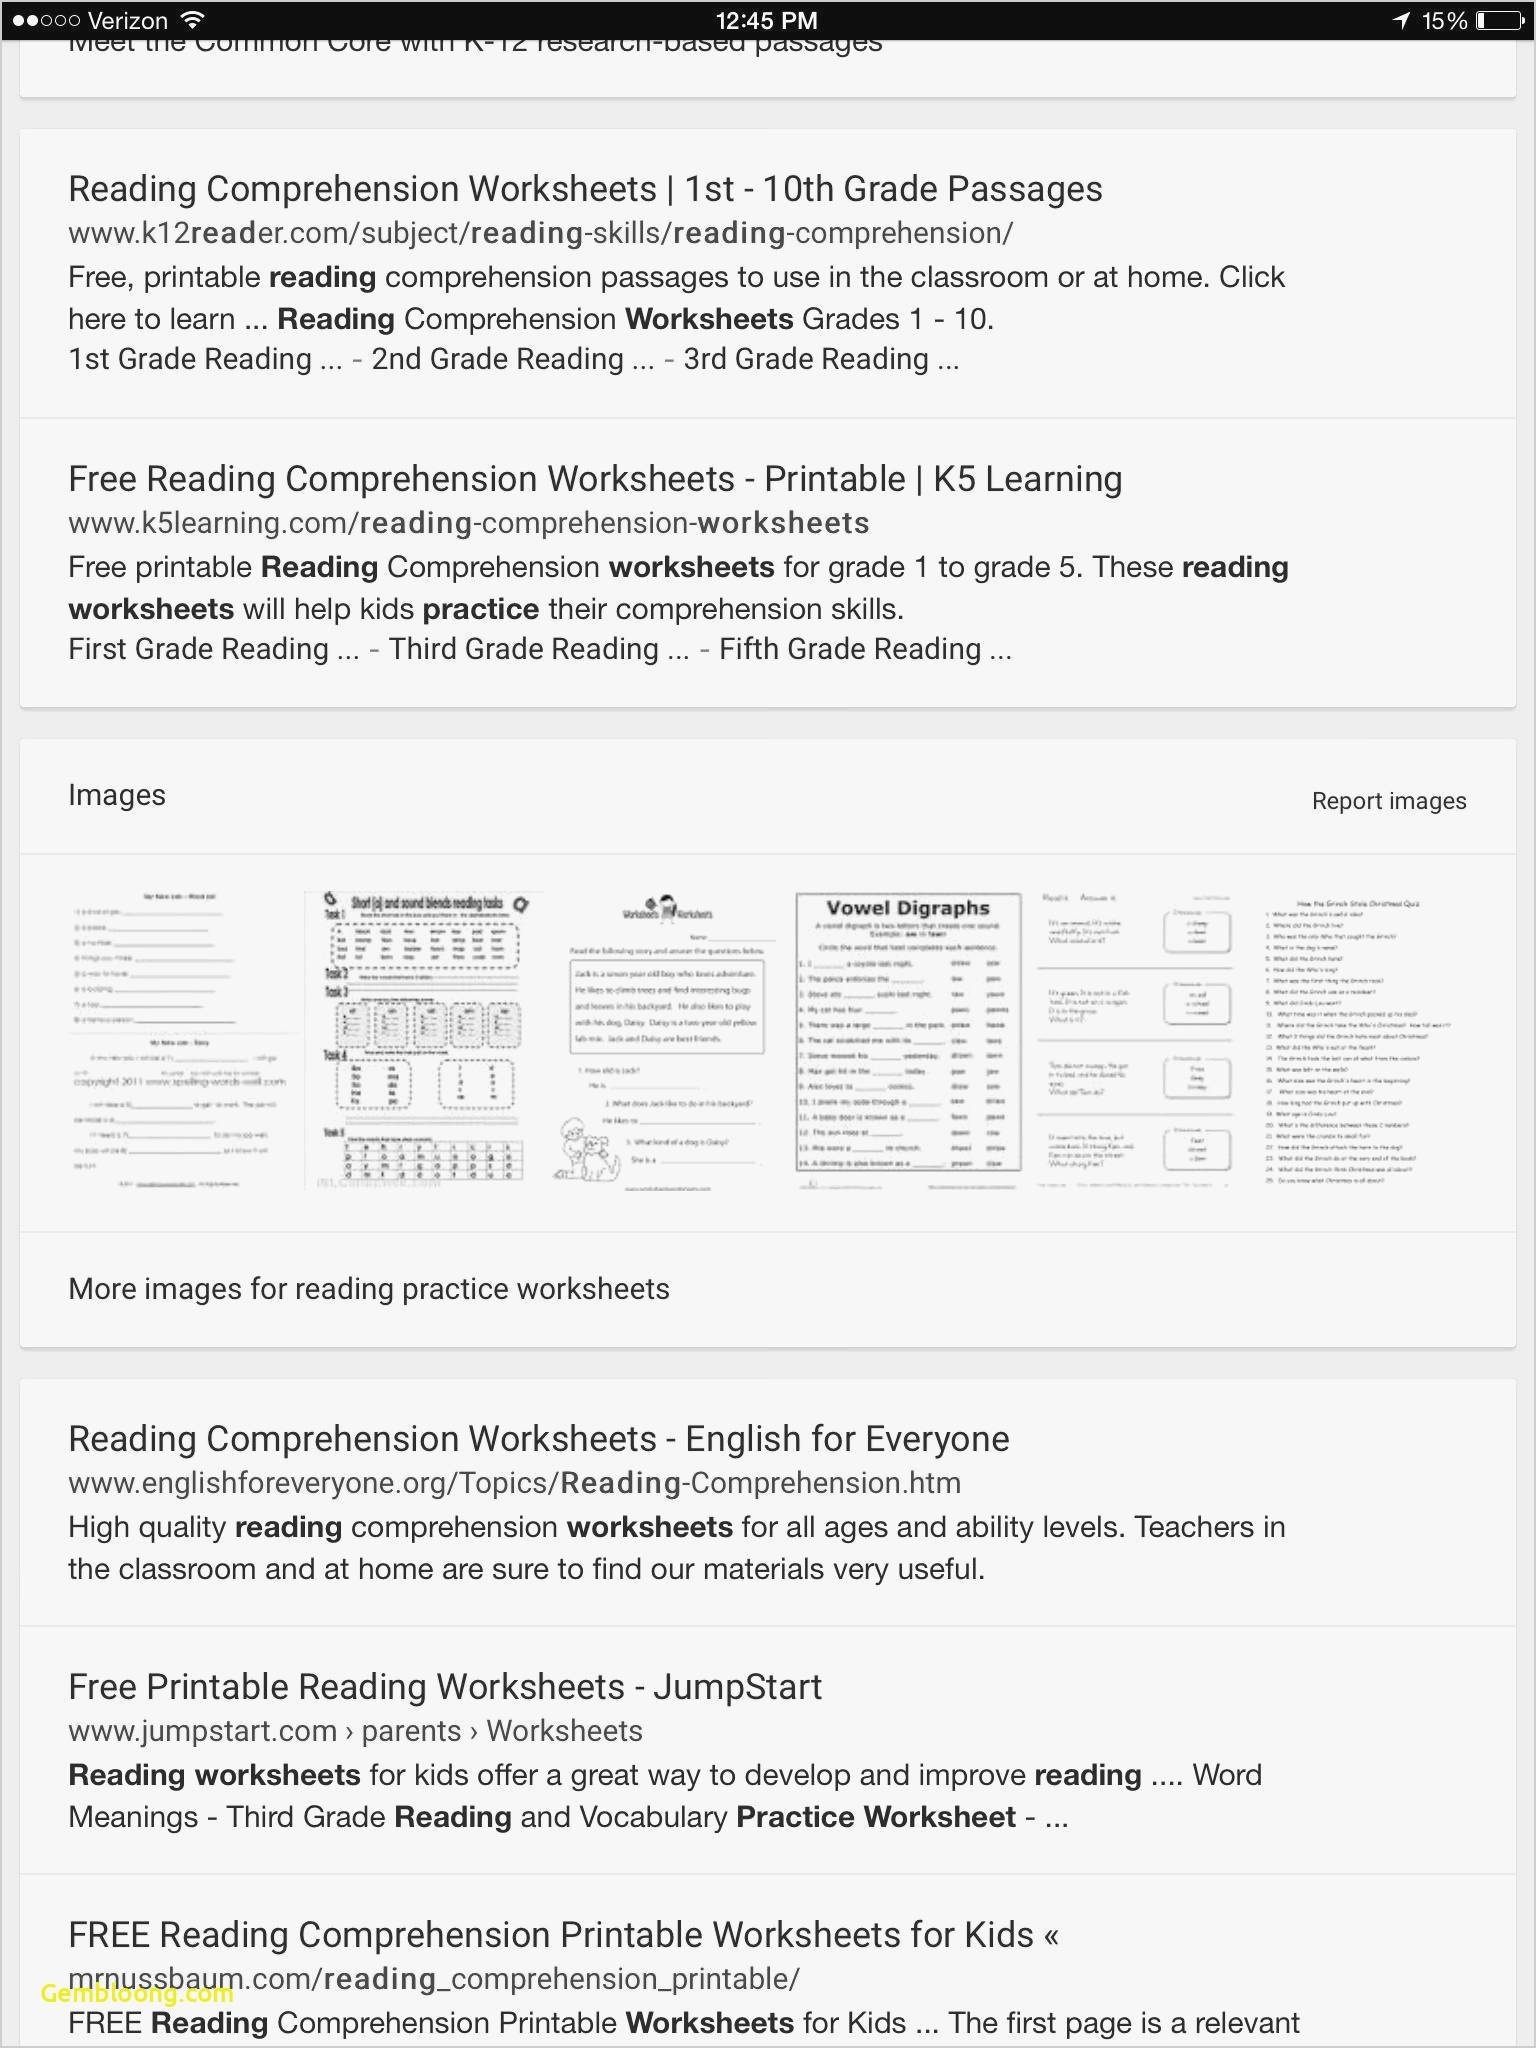 Reading Comprehension Worksheets For 1St Grade - Cramerforcongress - Third Grade Reading Worksheets Free Printable